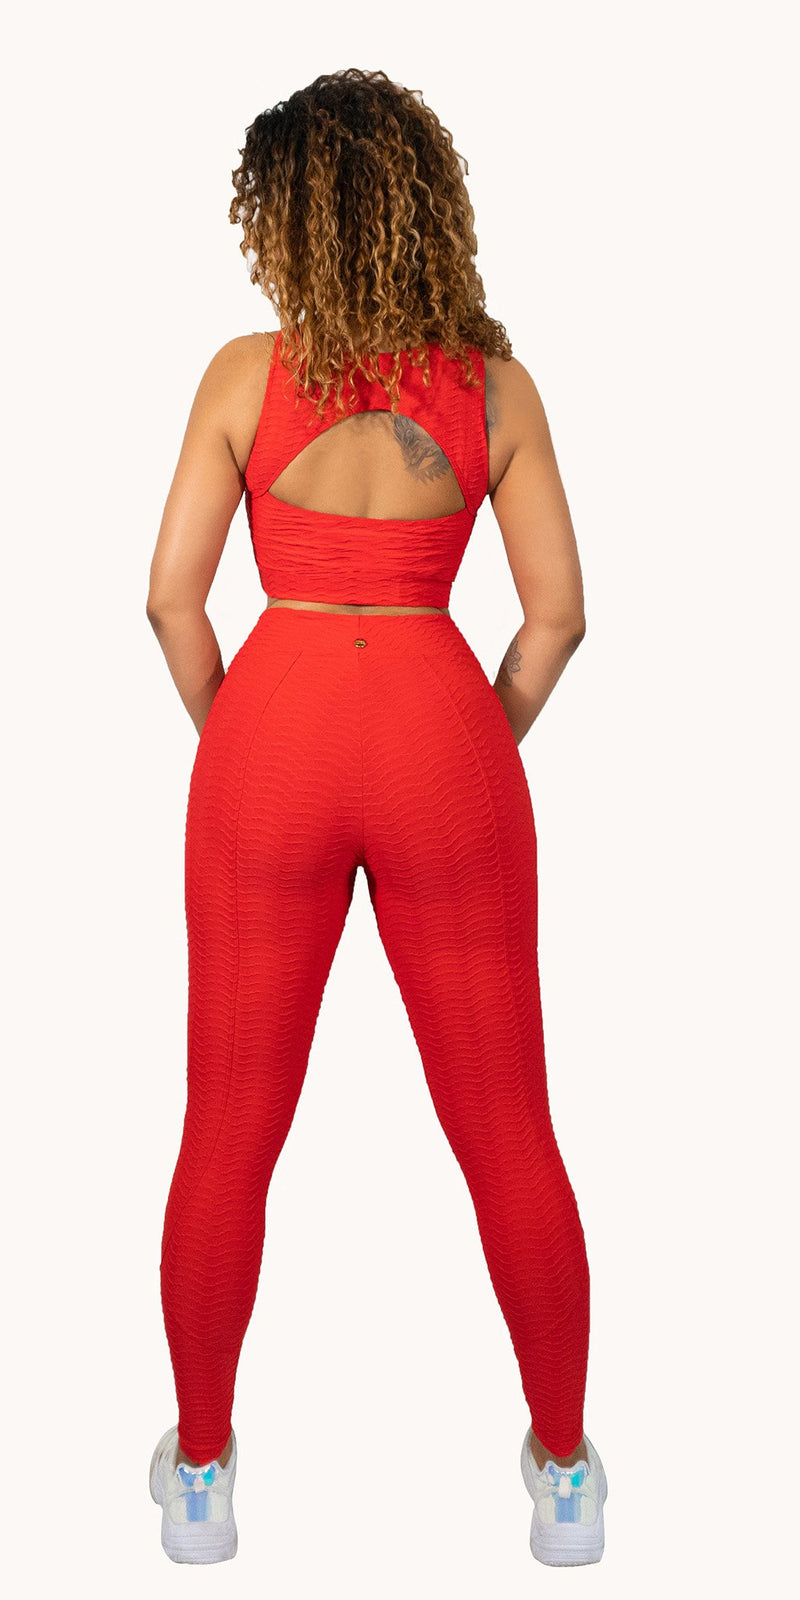 Love Yourself Leggings in Red by Alemana